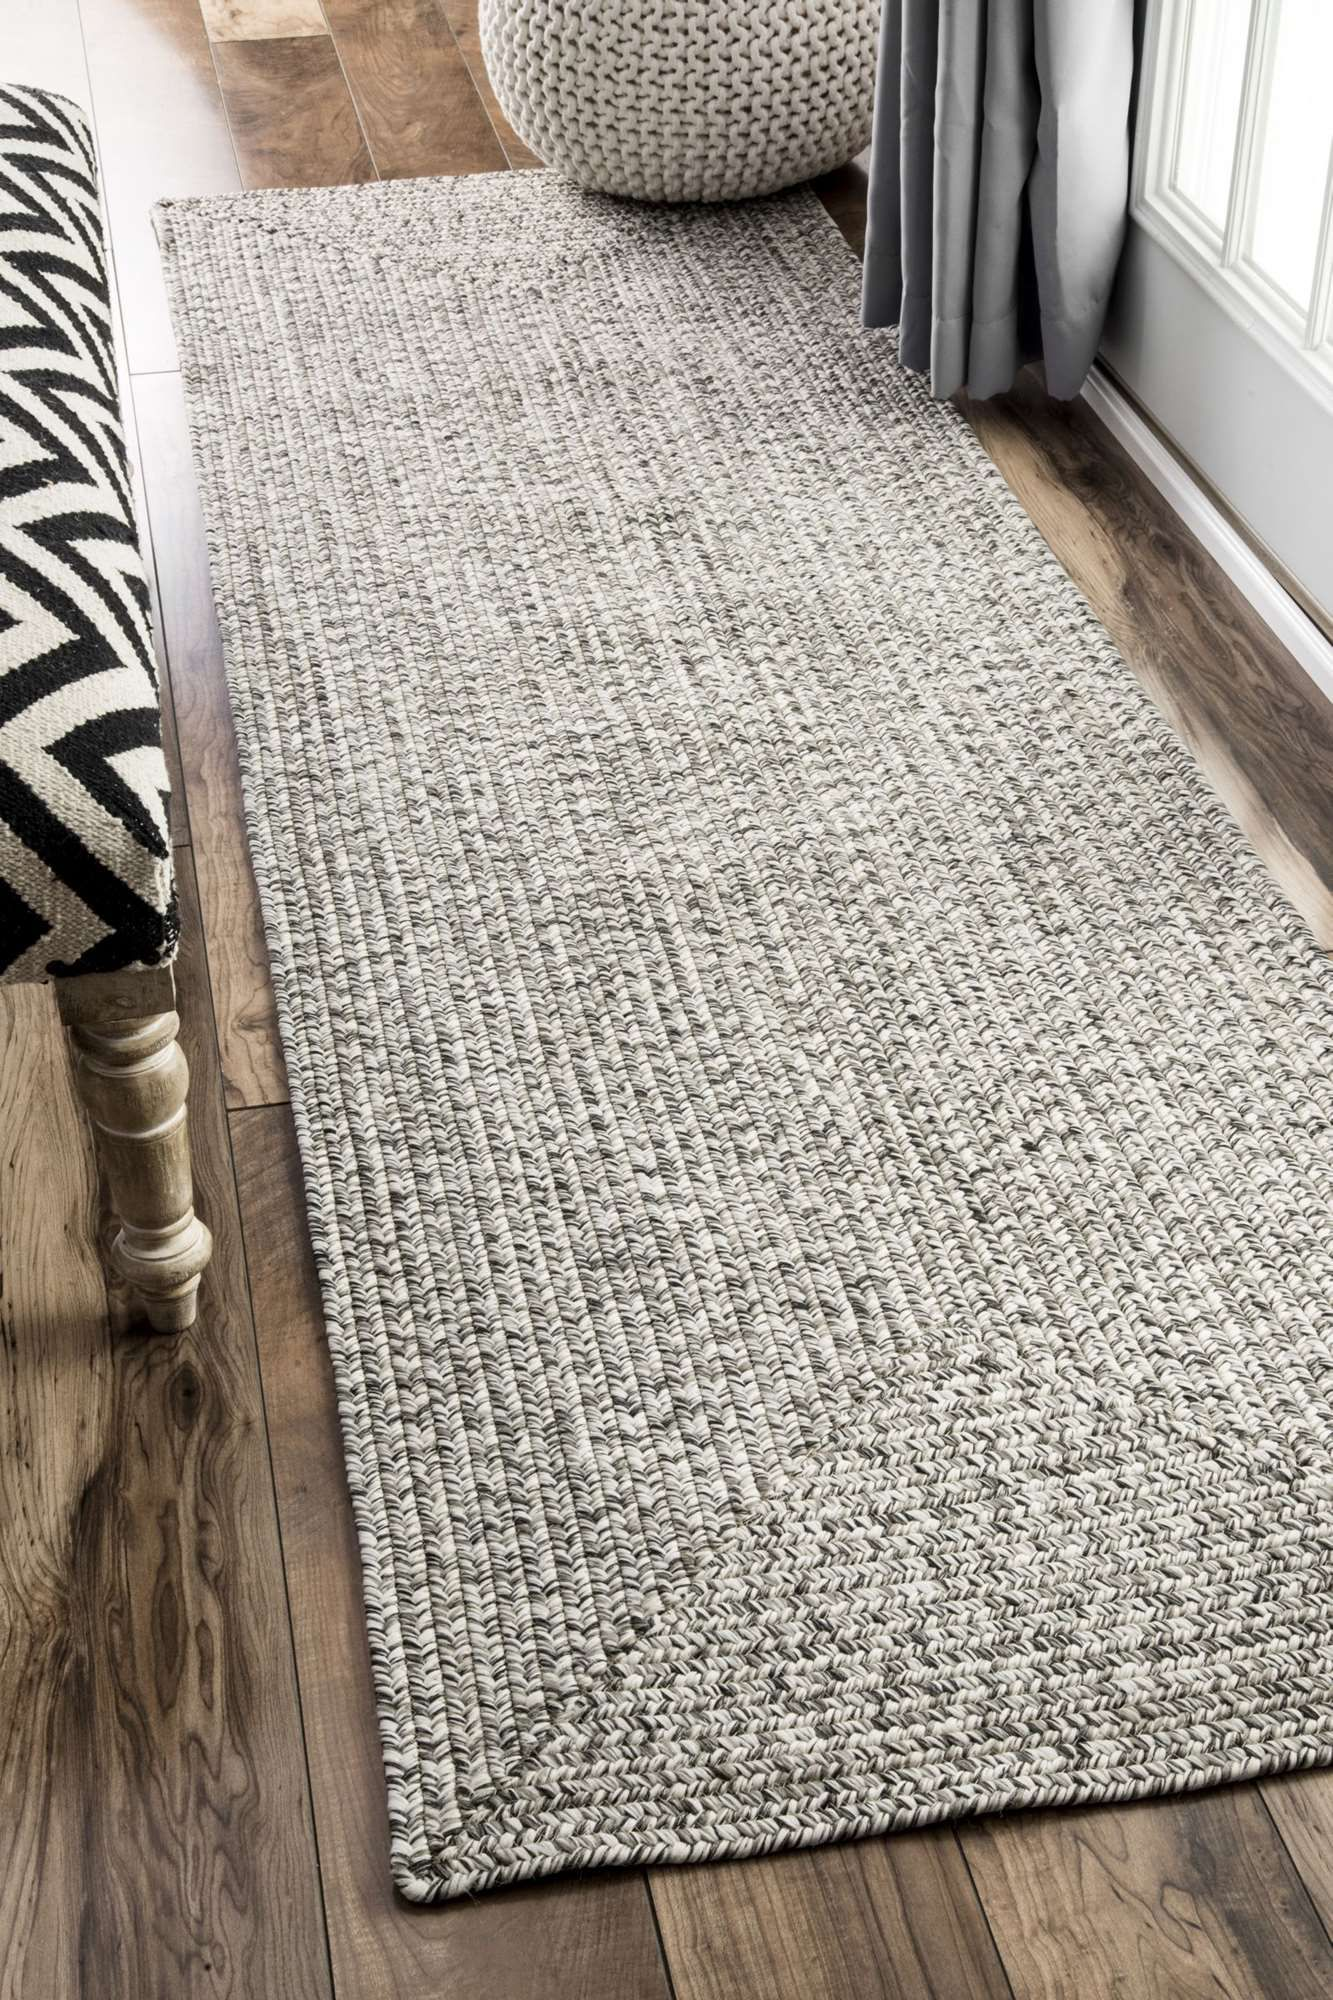 Rugs Usa Area Rugs In Many Styles Including Contemporary Braided Outdoor And Flokati Shag Rugs Buy Rugs At Americas Home Decorating Superstorearea Rugs